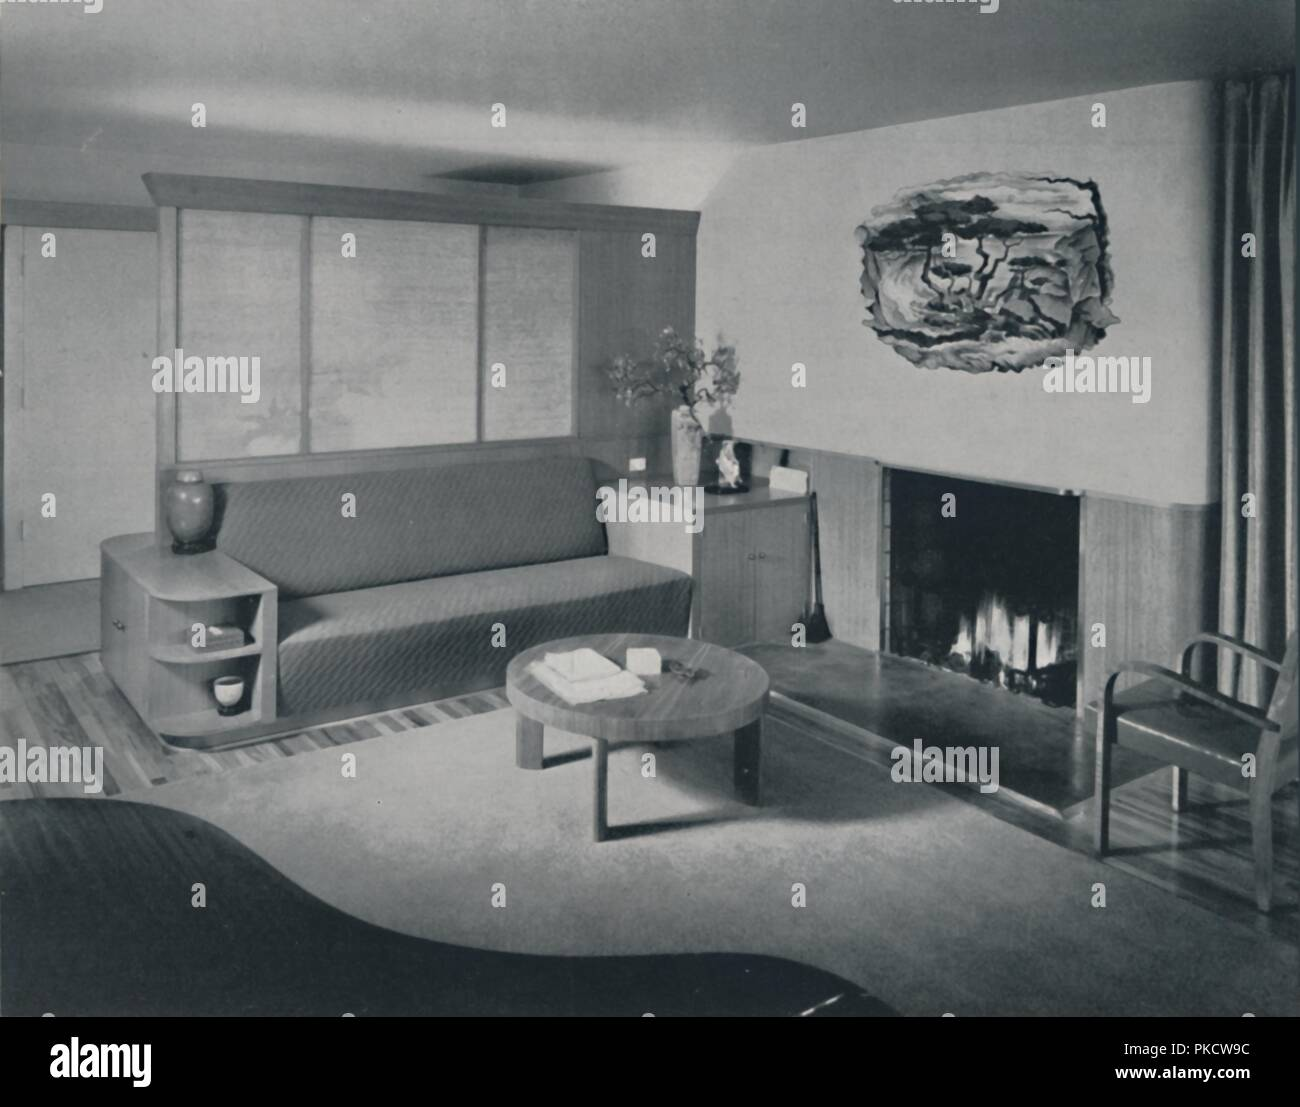 'House at Pomona, California - the living room from the other side of the partition', 1942. Vignette above fireplace is a fresco by Milford Zornes, painted on wet plaster. Furniture, fabrics and colour scheme designed by Honor Easton and Alyne Whalen. From Decorative Art 1942 - The Studio Year Book, edited by C. G. Holme. [The Studio Ltd., London, 1942] - Stock Image